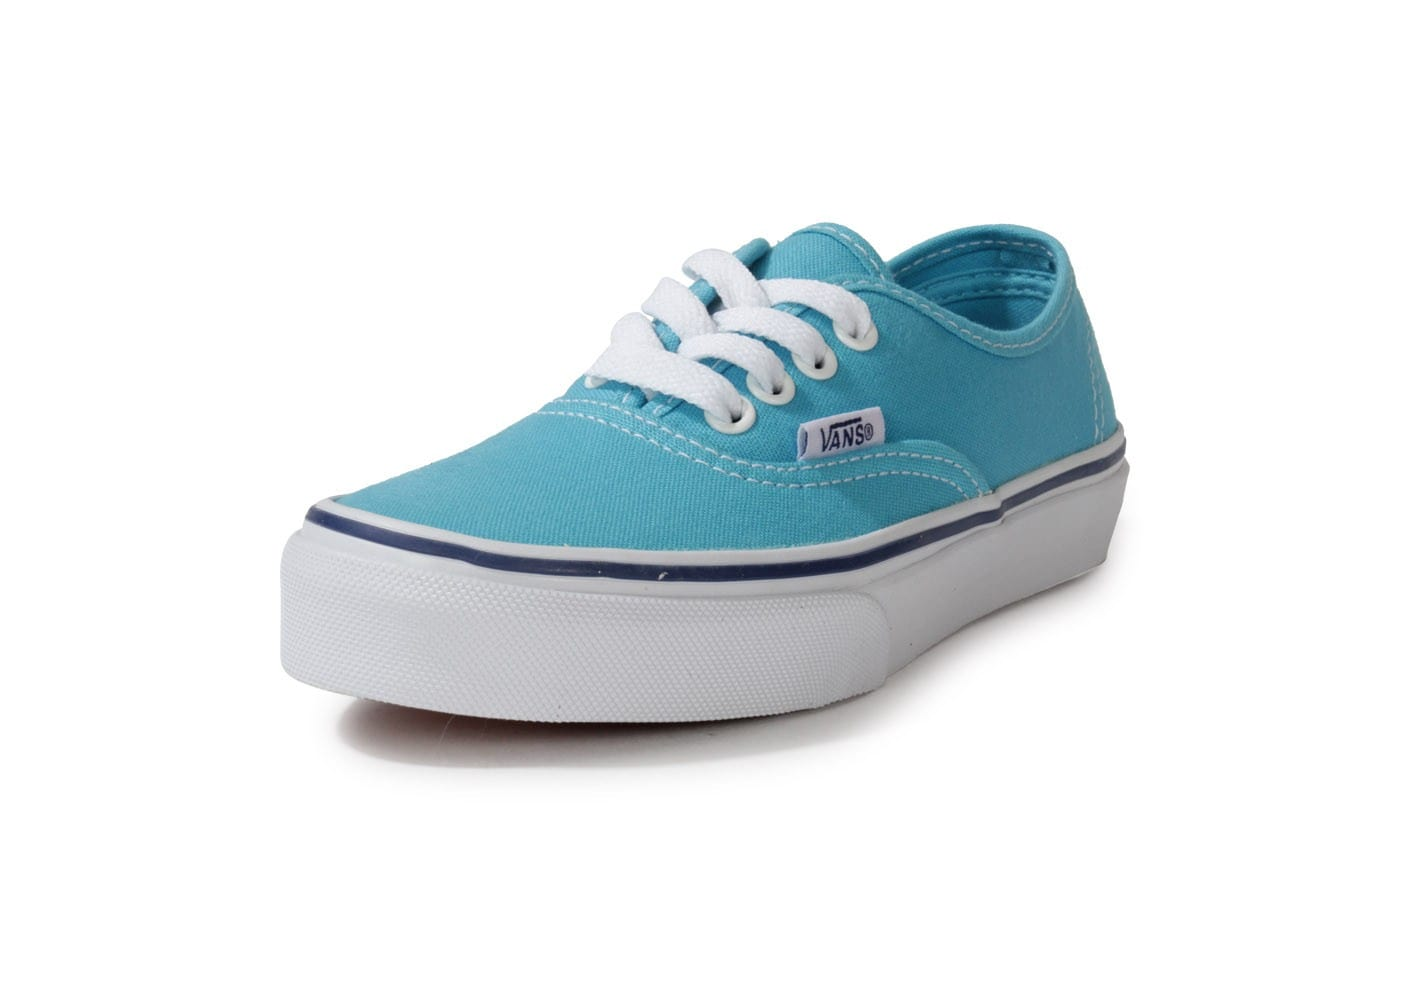 soldes vans authentic enfant bleu ciel chaussures toutes les baskets sold es chausport. Black Bedroom Furniture Sets. Home Design Ideas